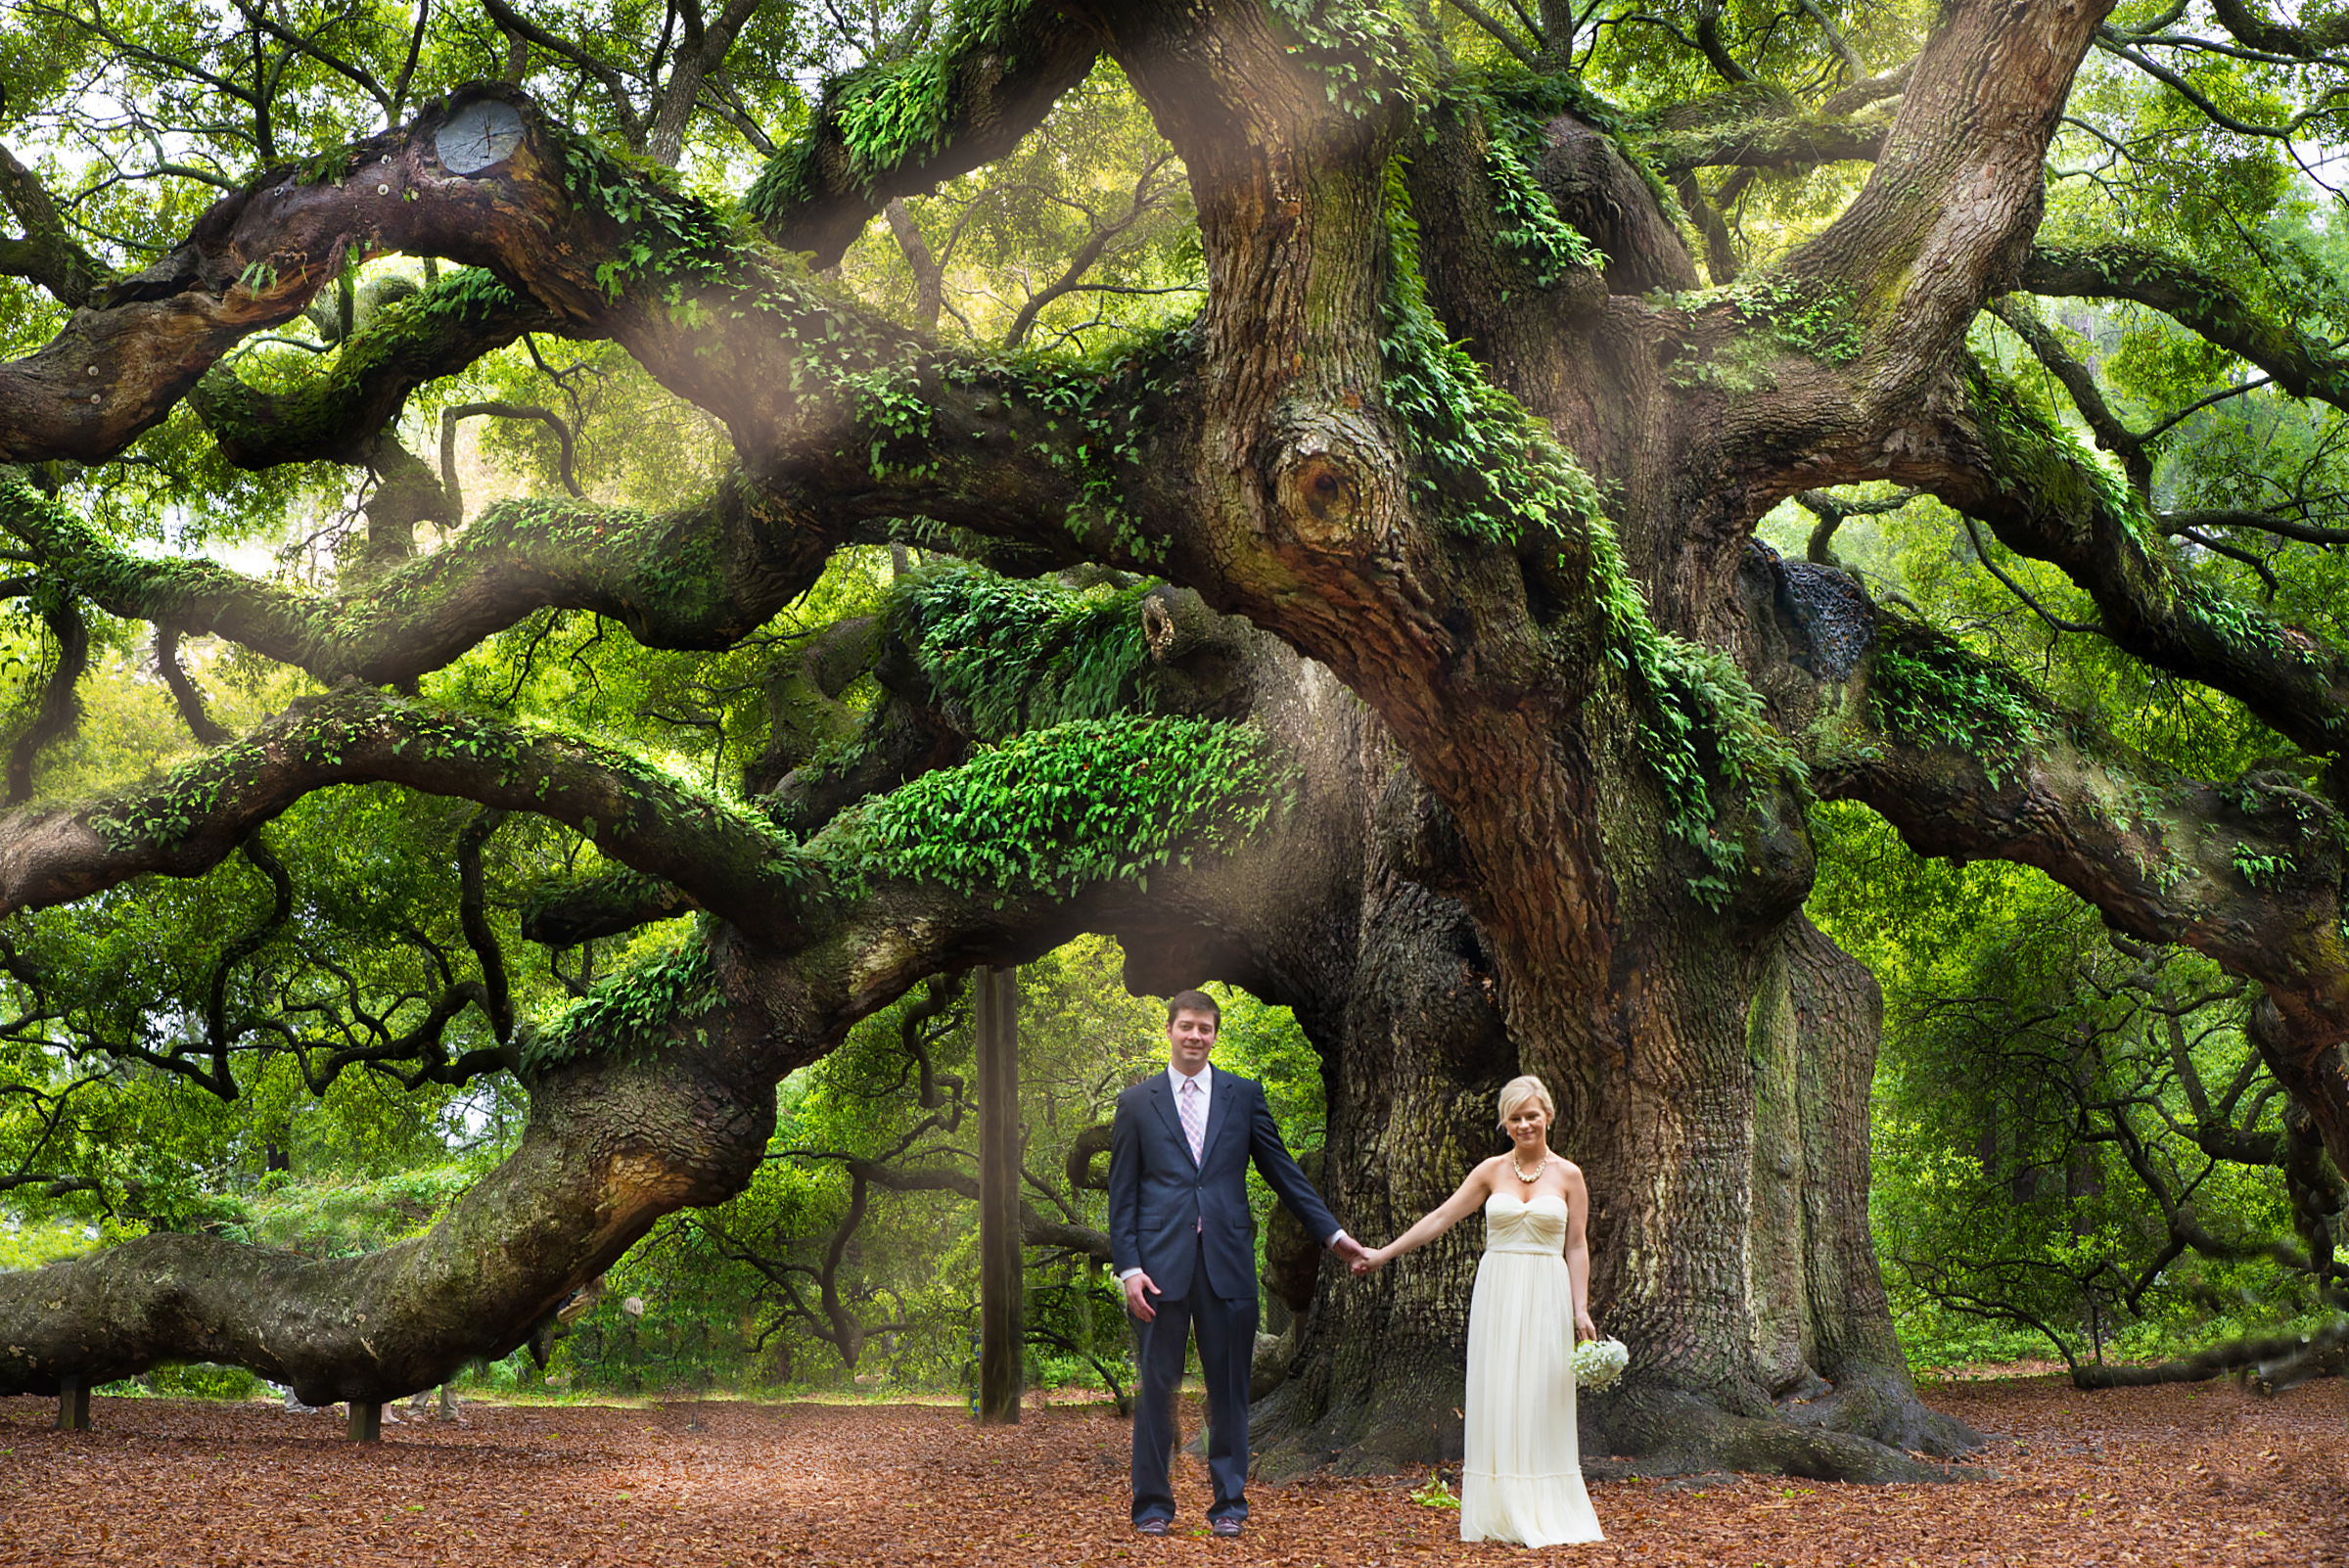 Angel Oak on Johns Island, South Carolina